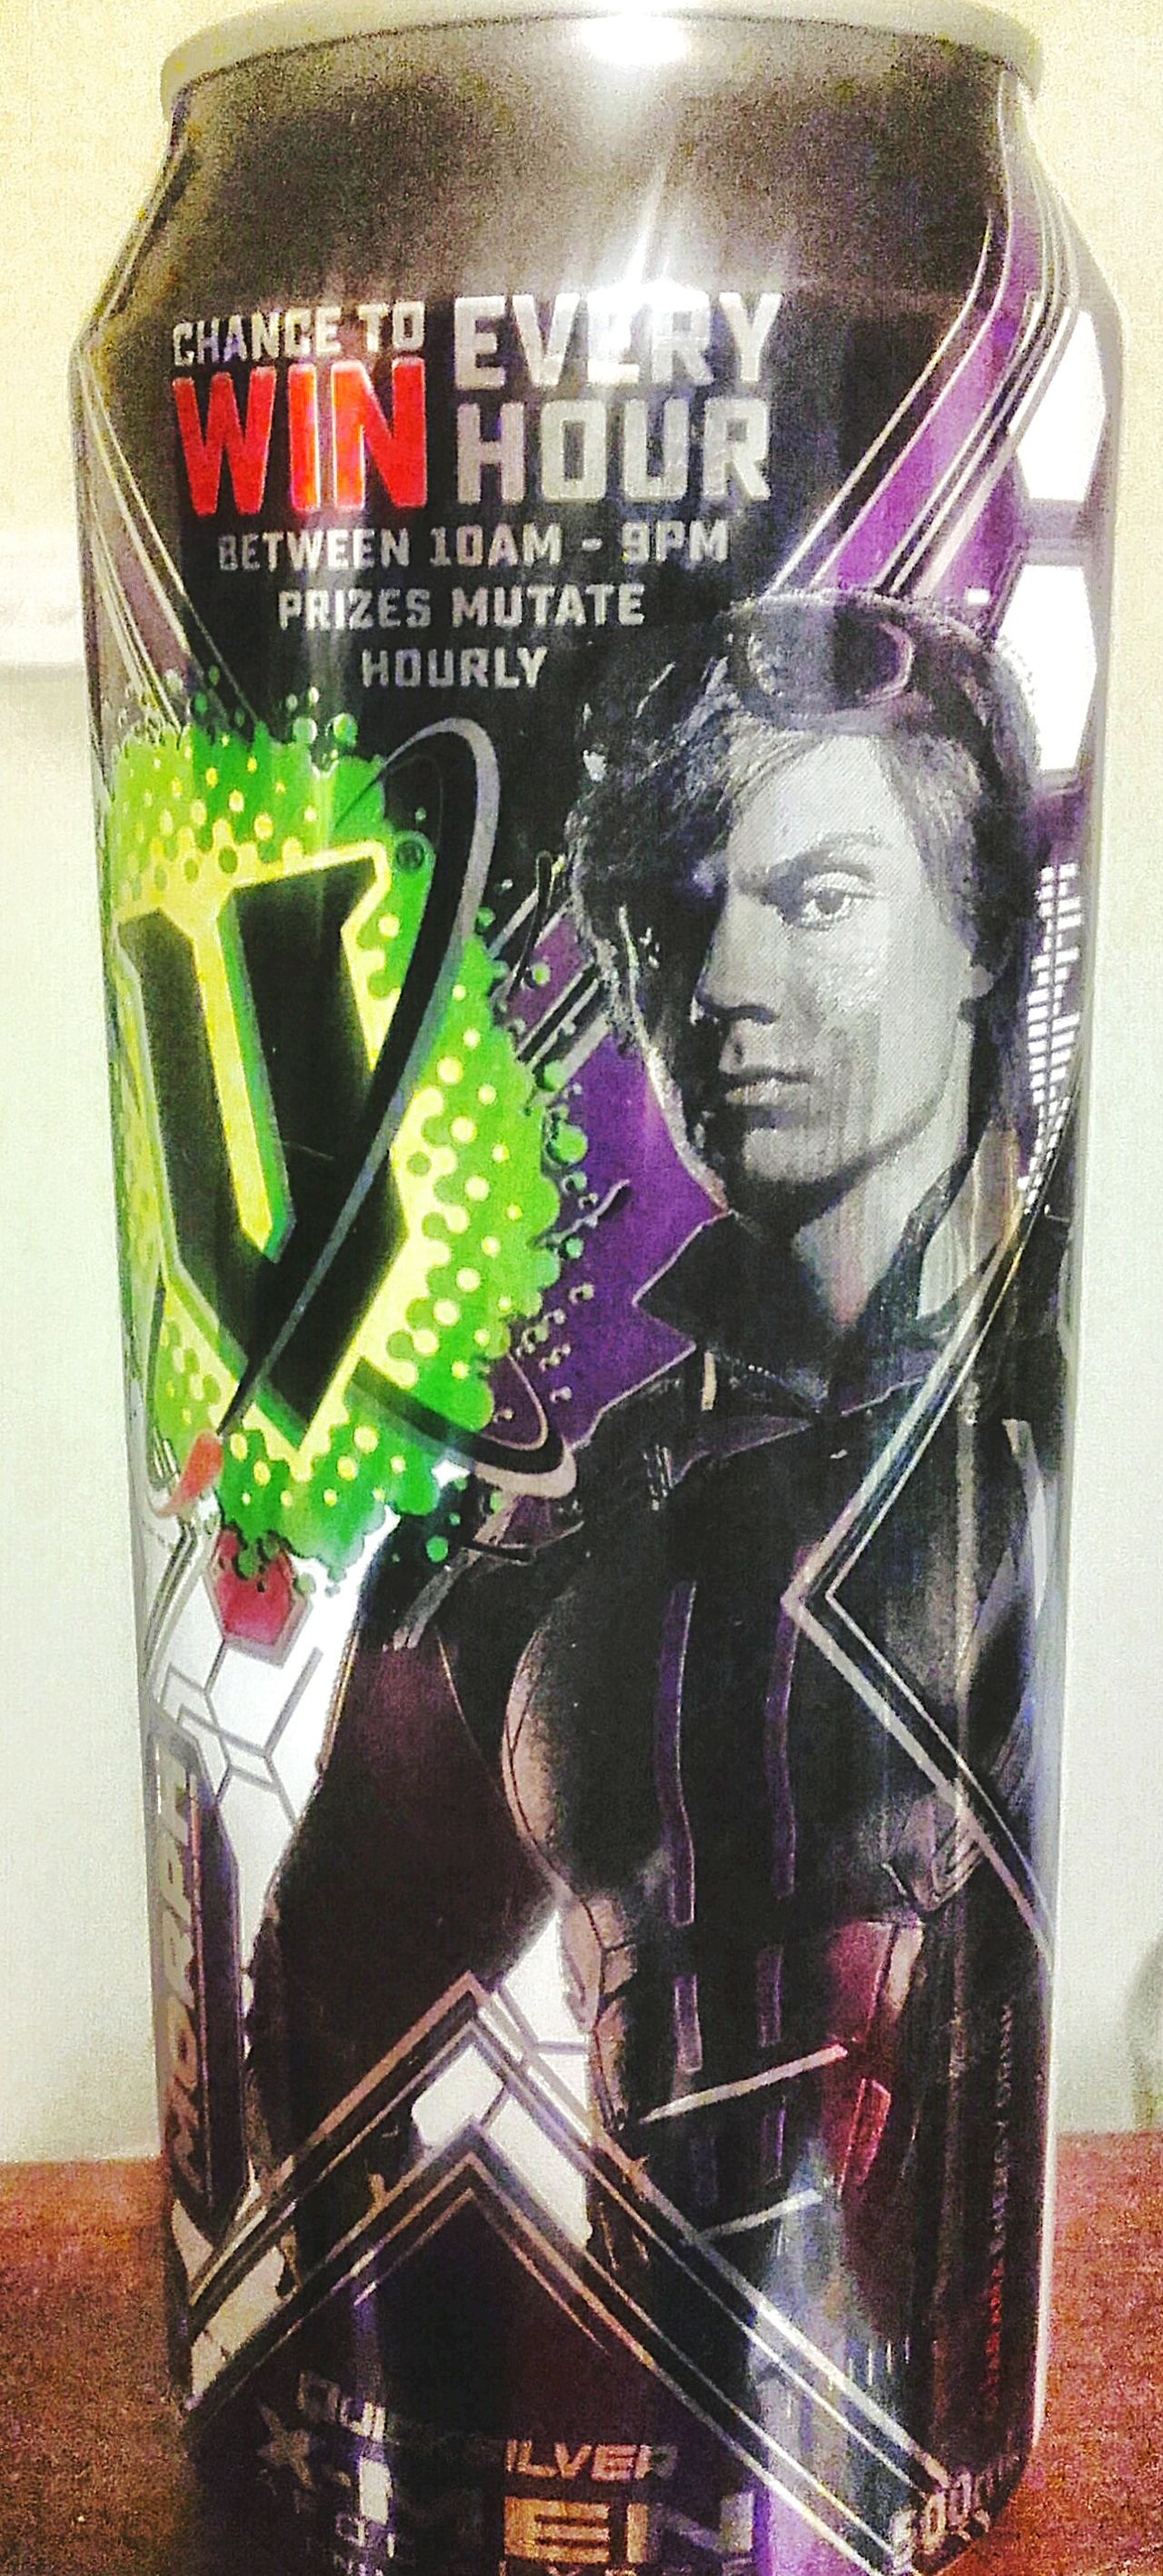 V EnergyBooster Energy Drink Cans EnergyDrinkCans Aluminum Can V Energy Drink Aluminium Cans Aluminiumcan Energy Drinks Energy Drink Aluminium Can Aluminiumcans Drinkcans Drink Can Energyboost Energydrinks Drink Cans Energydrink X-men Apocalypse Morph X-men Xmenapocalypse Xmen Xmencollection Guarana Energy Drinks